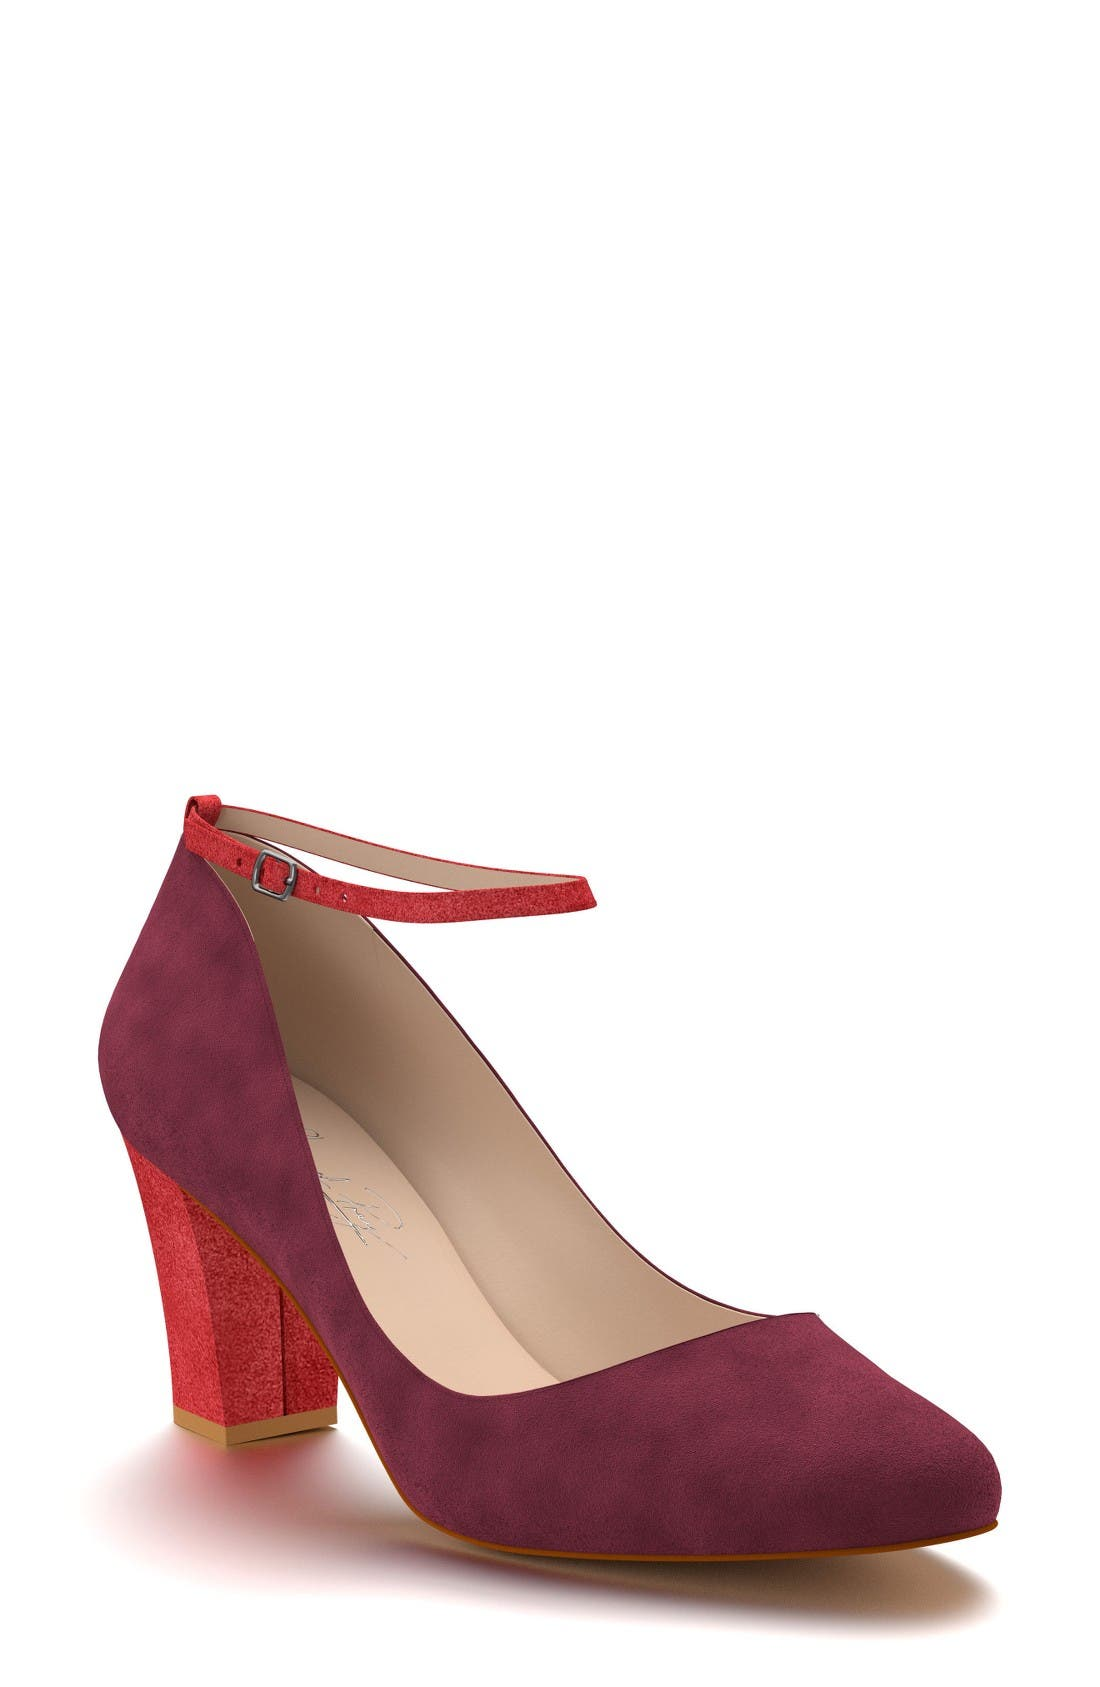 Alternate Image 1 Selected - Shoes of Prey Block Heel Pump (Women)